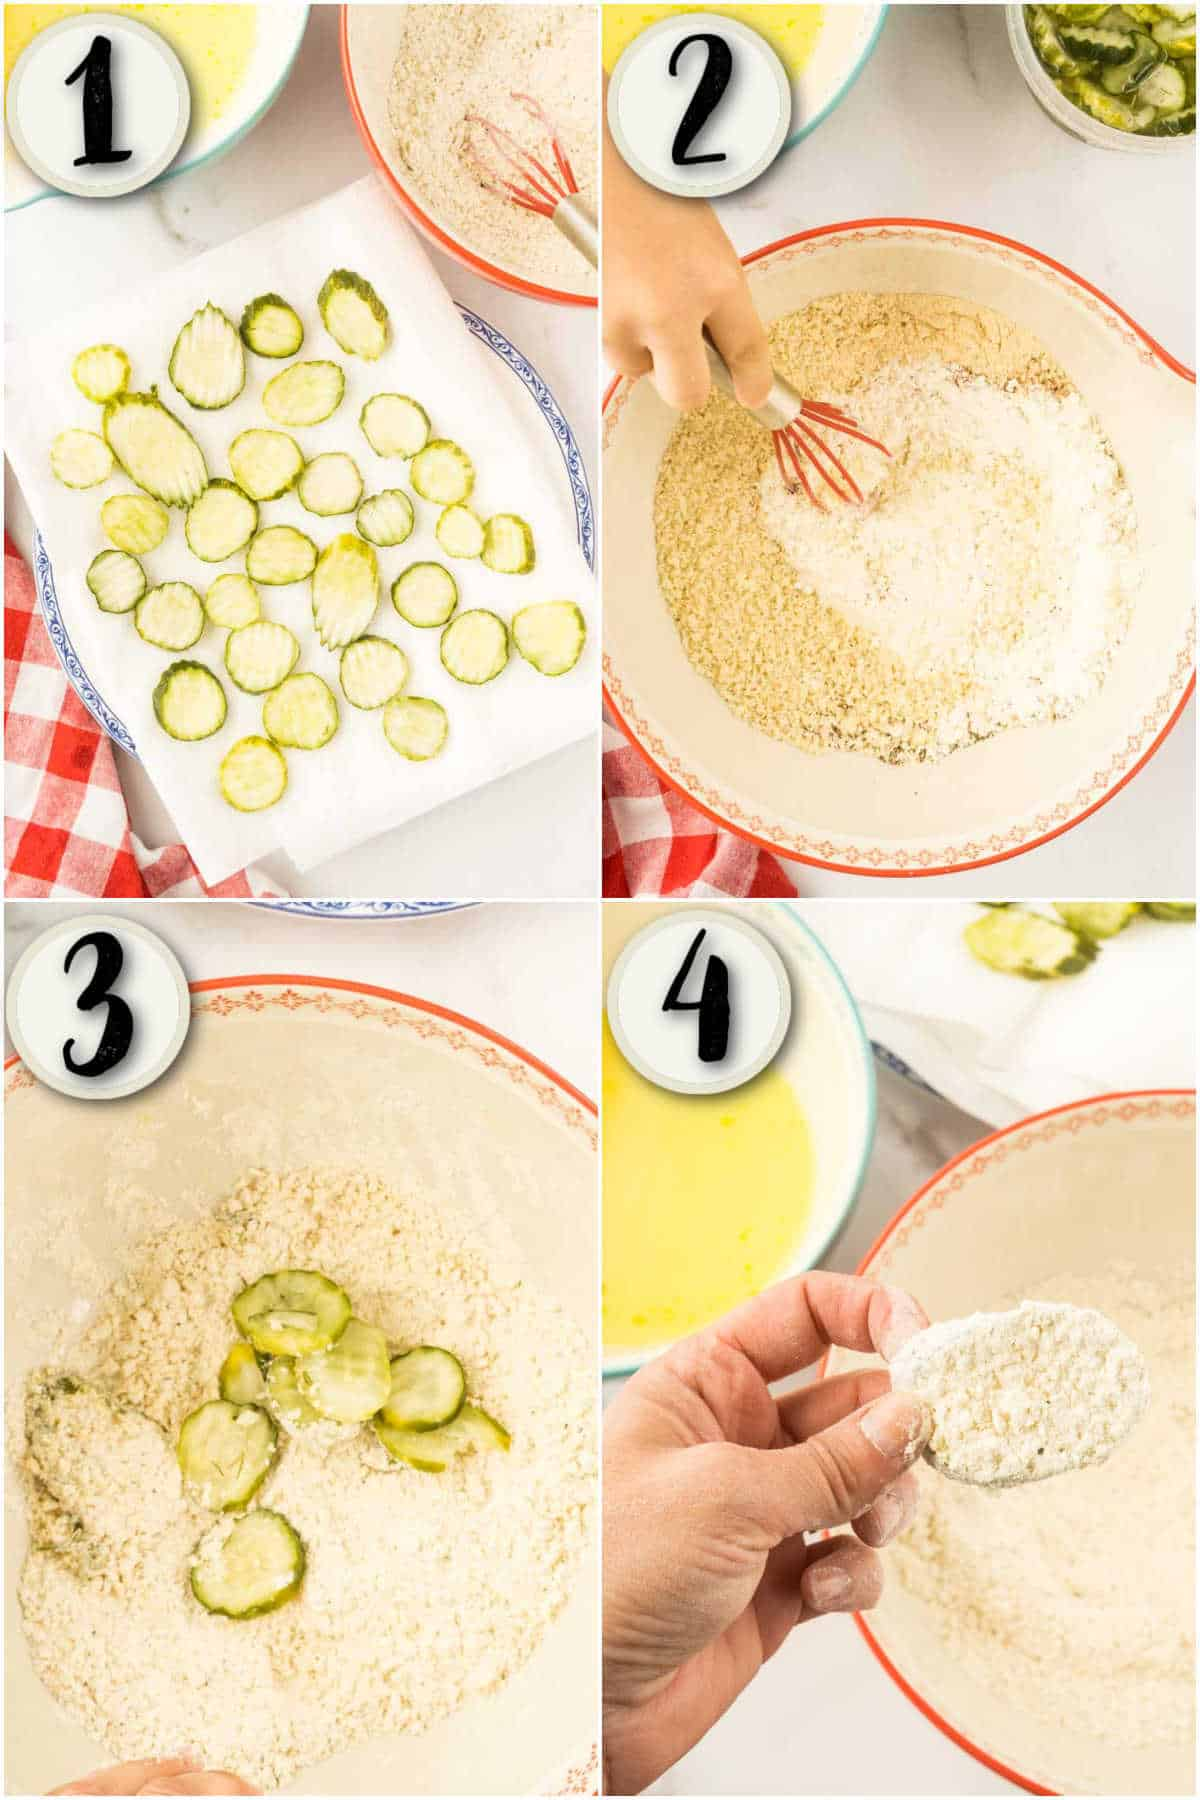 grid of 4 images showing process of drying pickles, mixing flour, and double breading pickles